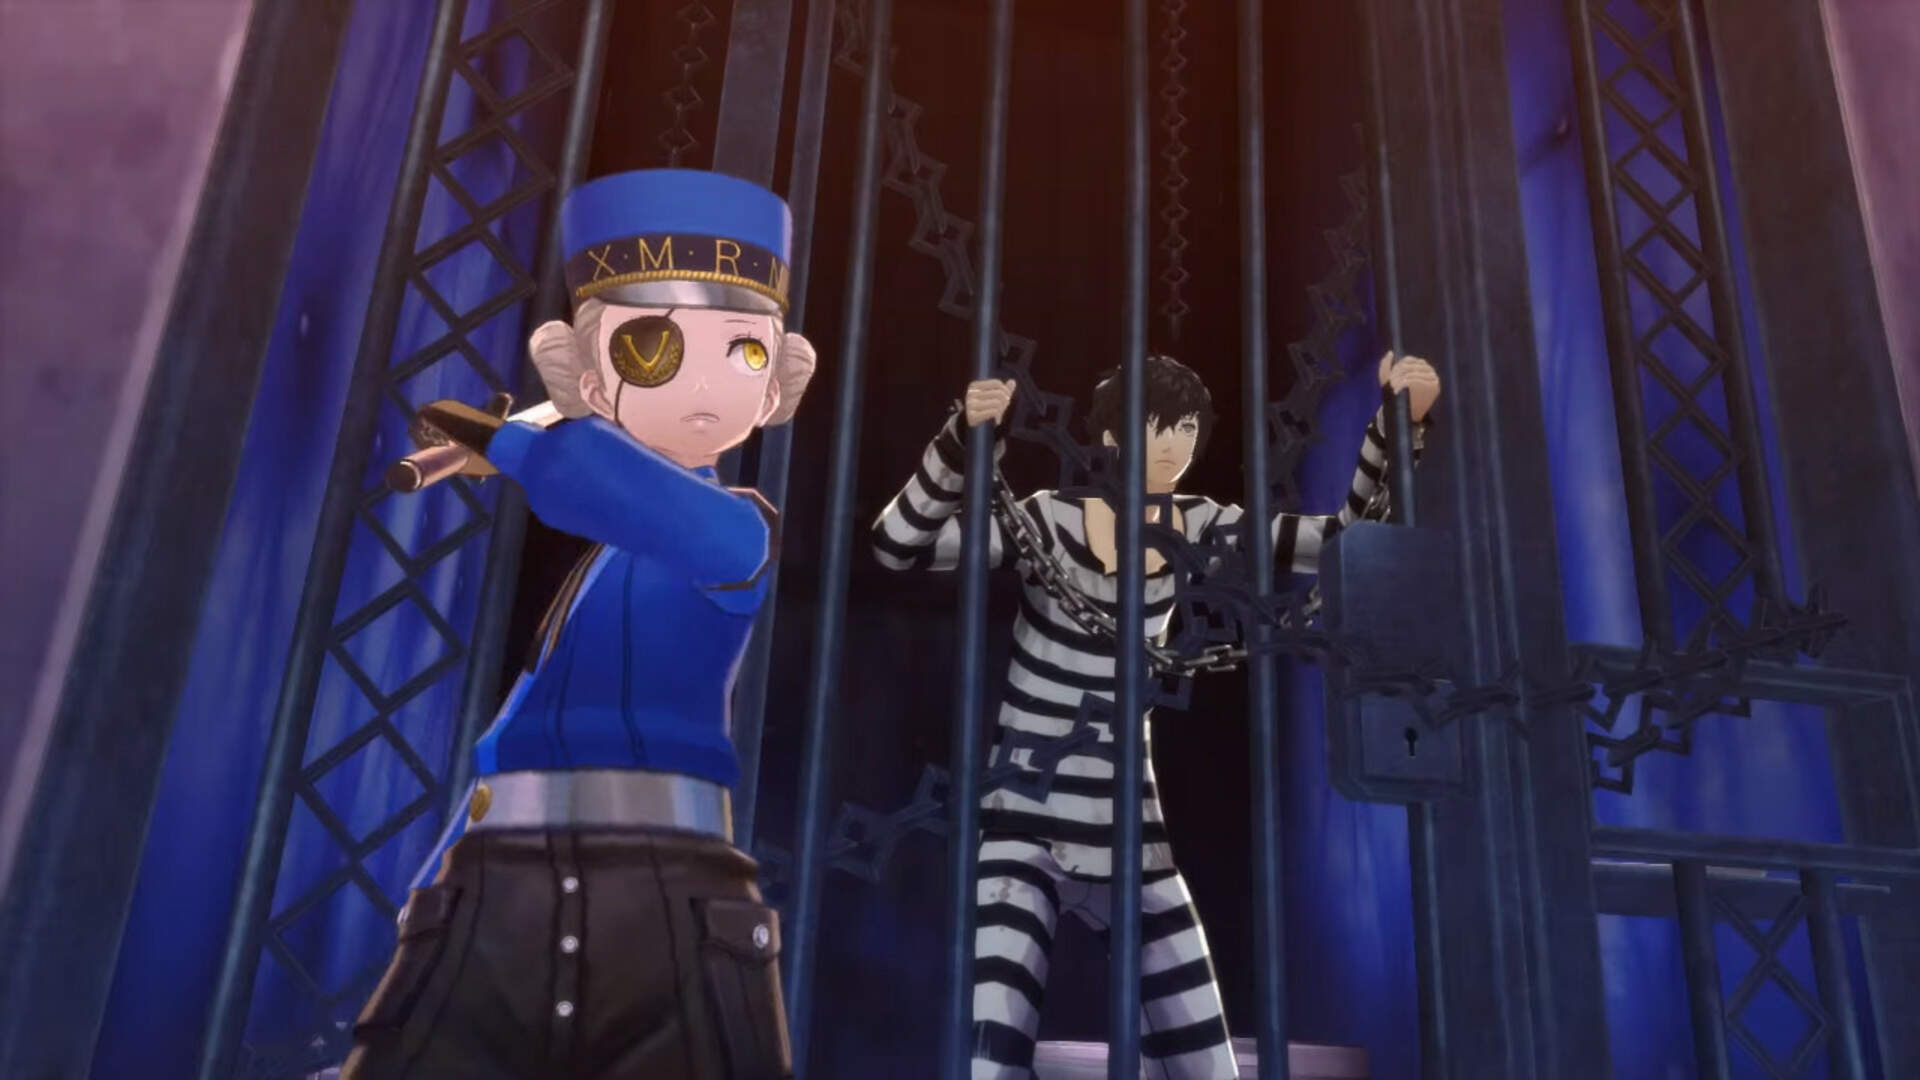 Persona 5 Fusion Beginner's Guide - How to Make Powerful Personas